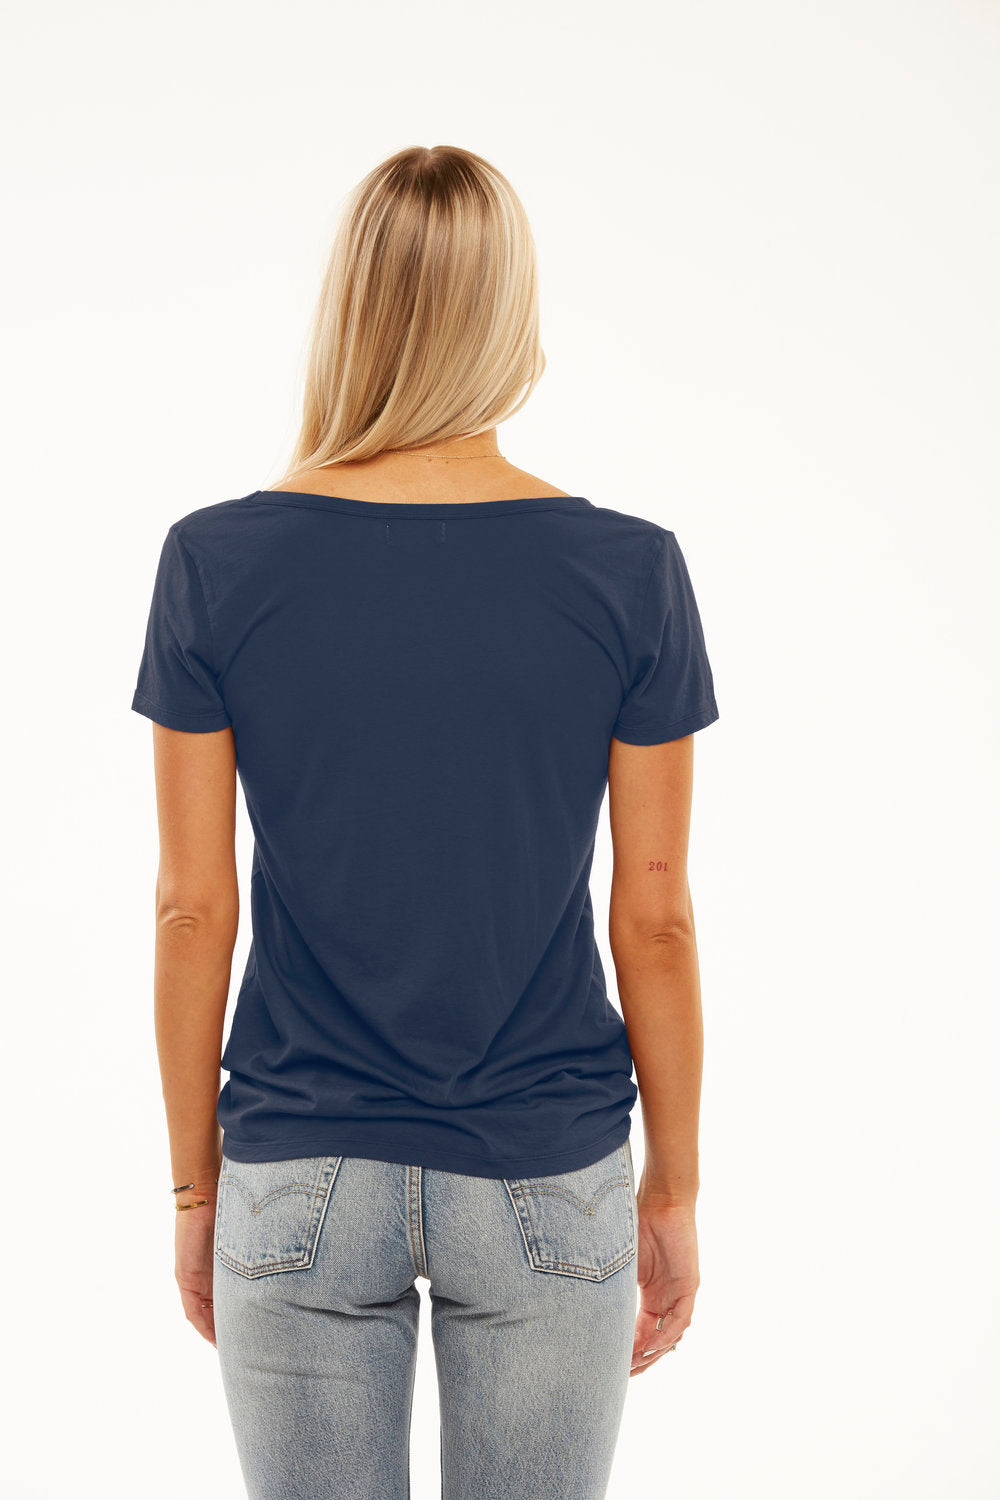 Cruz Deep V Boyfriend Tee in Lady Navy